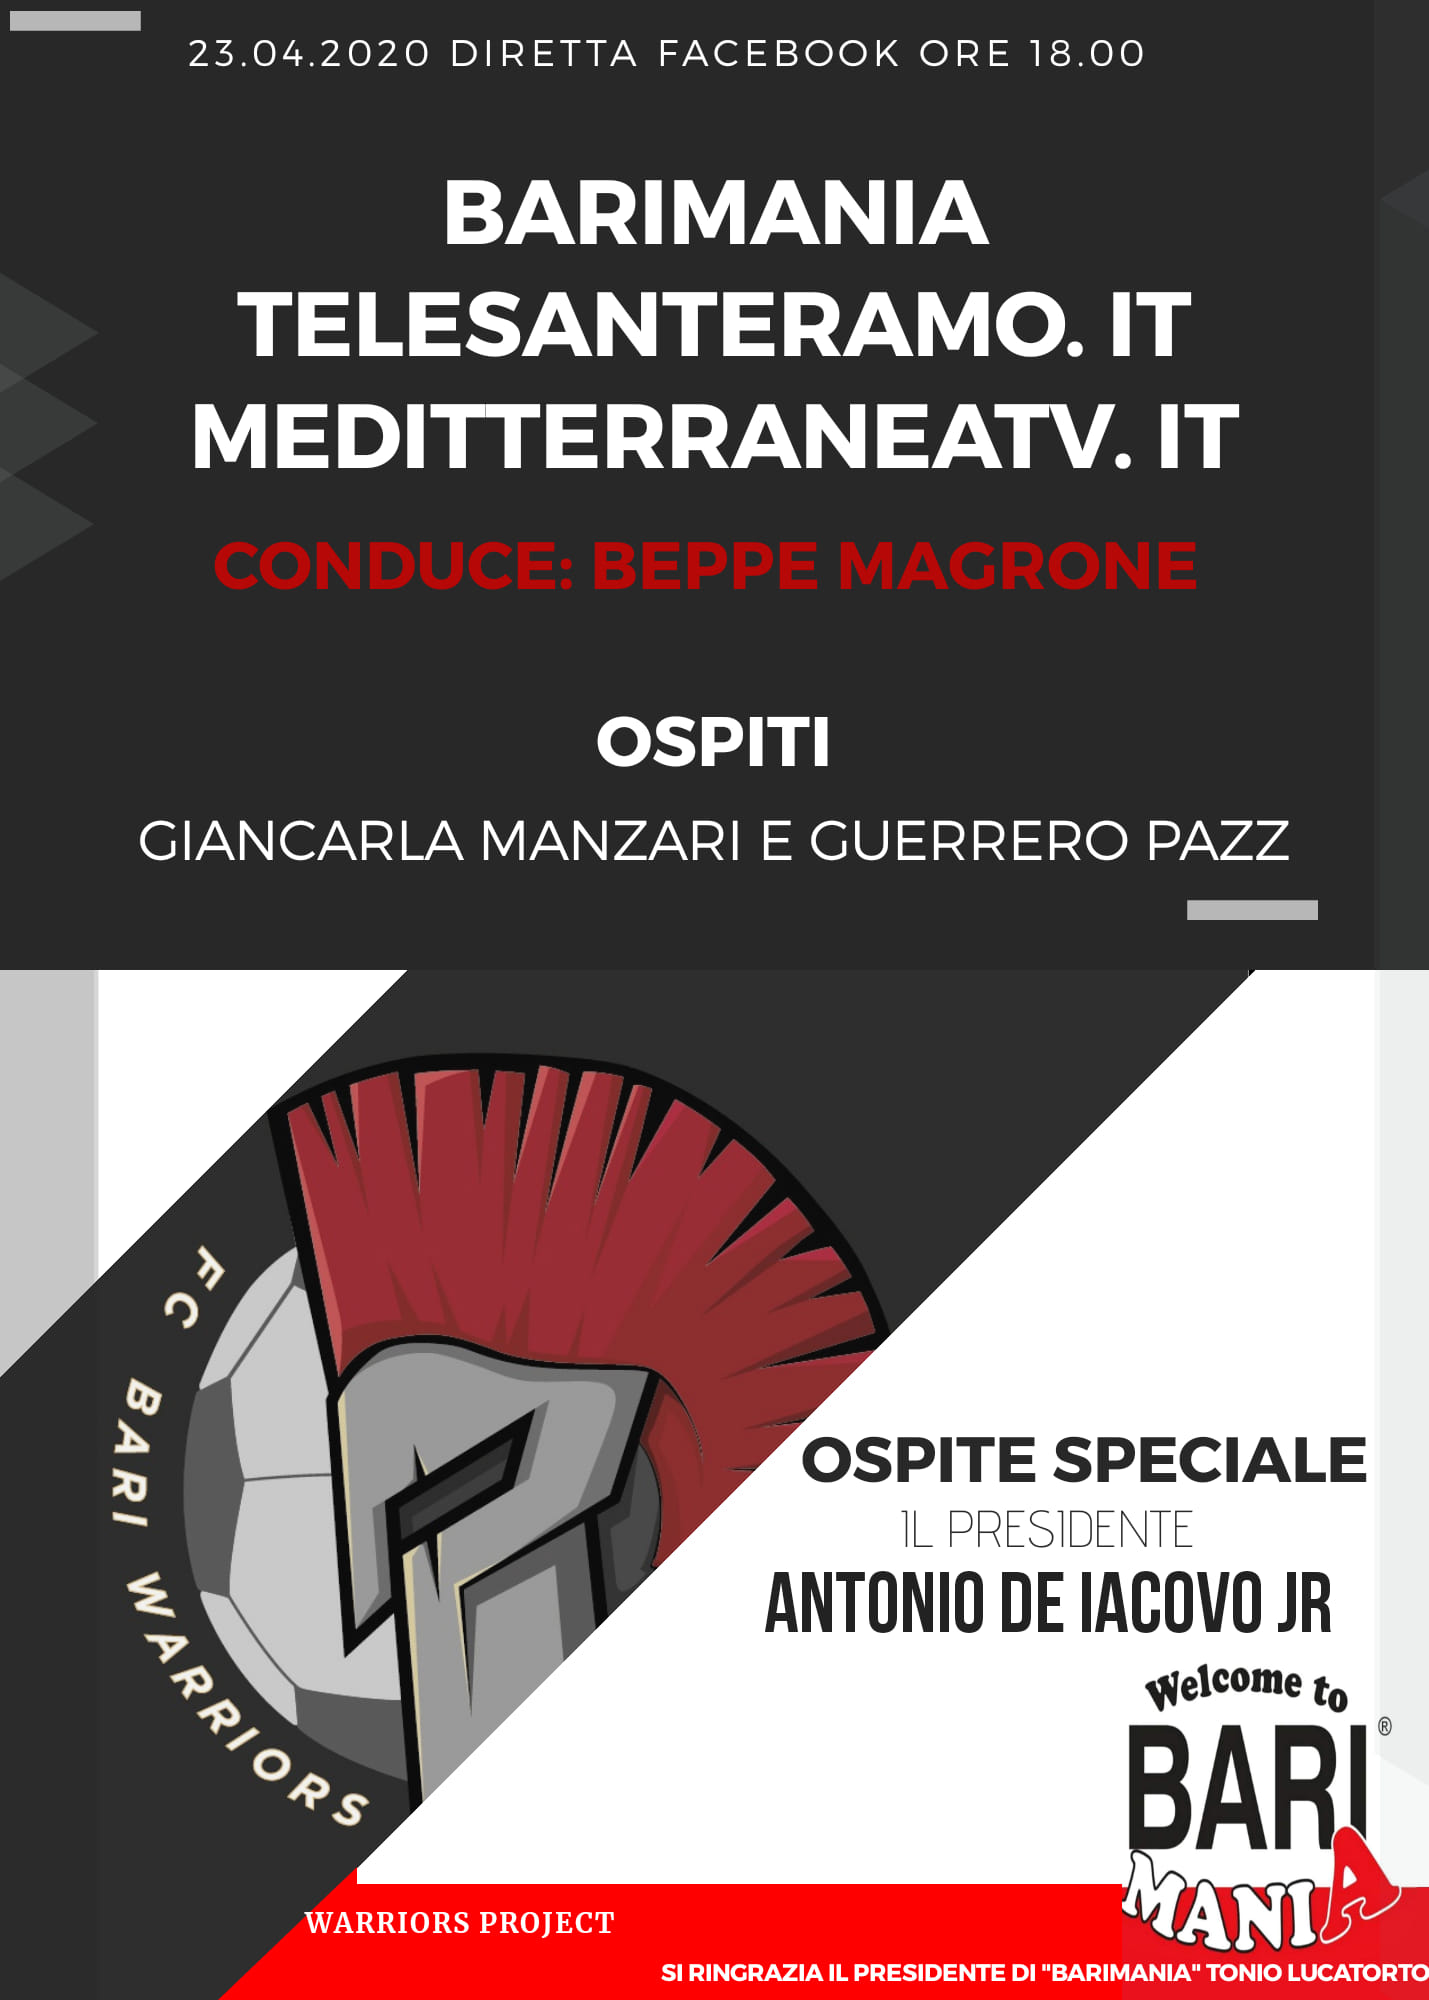 Speciale BARIMANIA e FC BARI WARRIORS